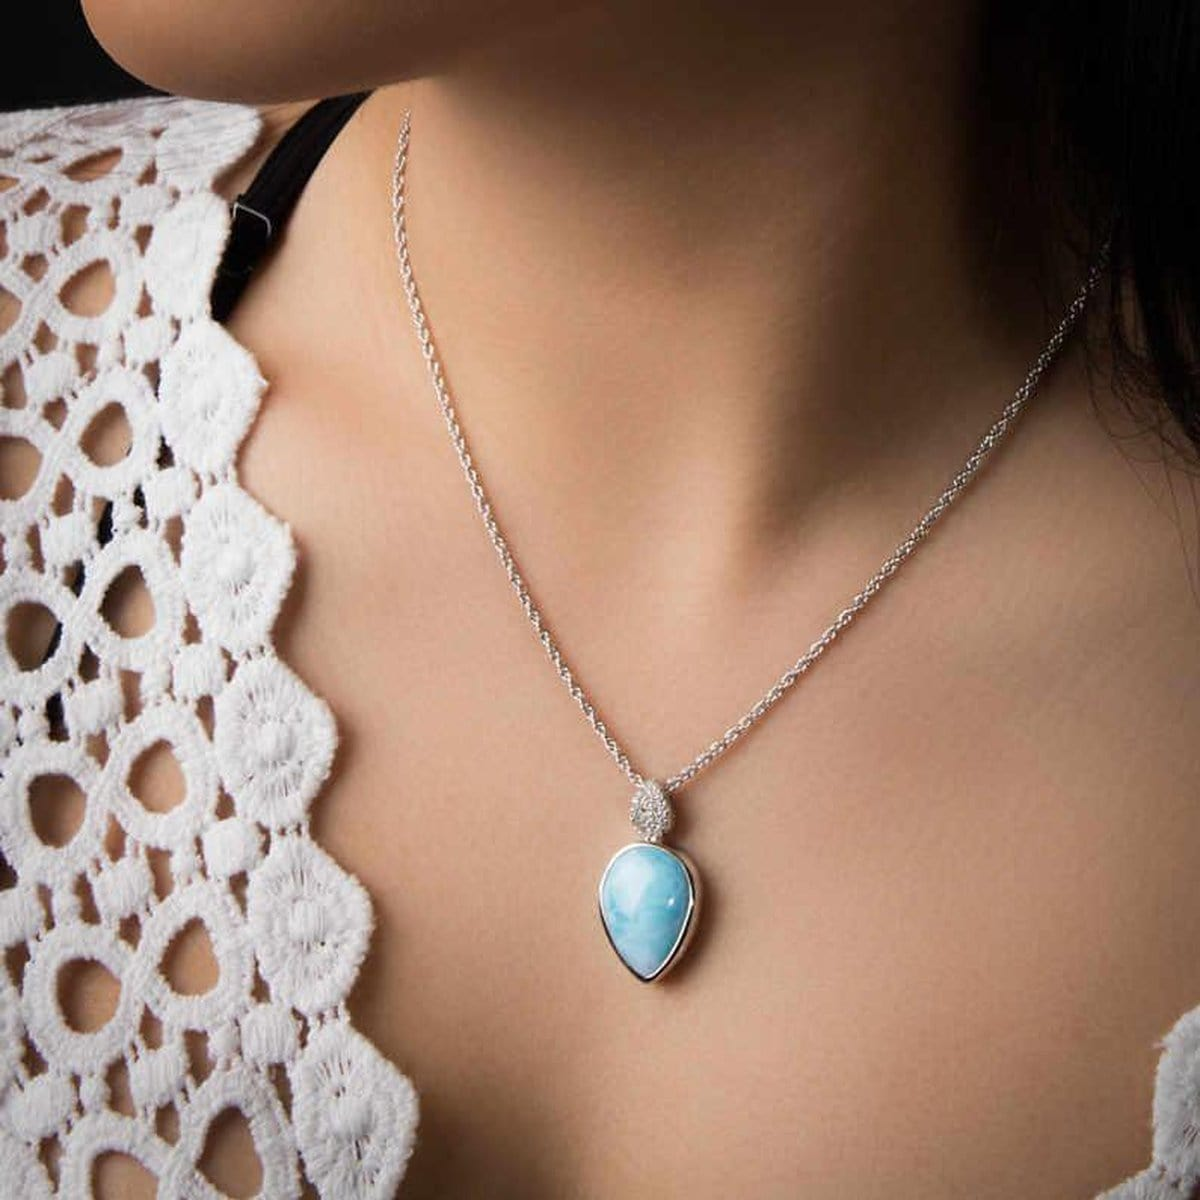 Bliss Pear Necklace - Nblis0P-00-Marahlago Larimar-Renee Taylor Gallery